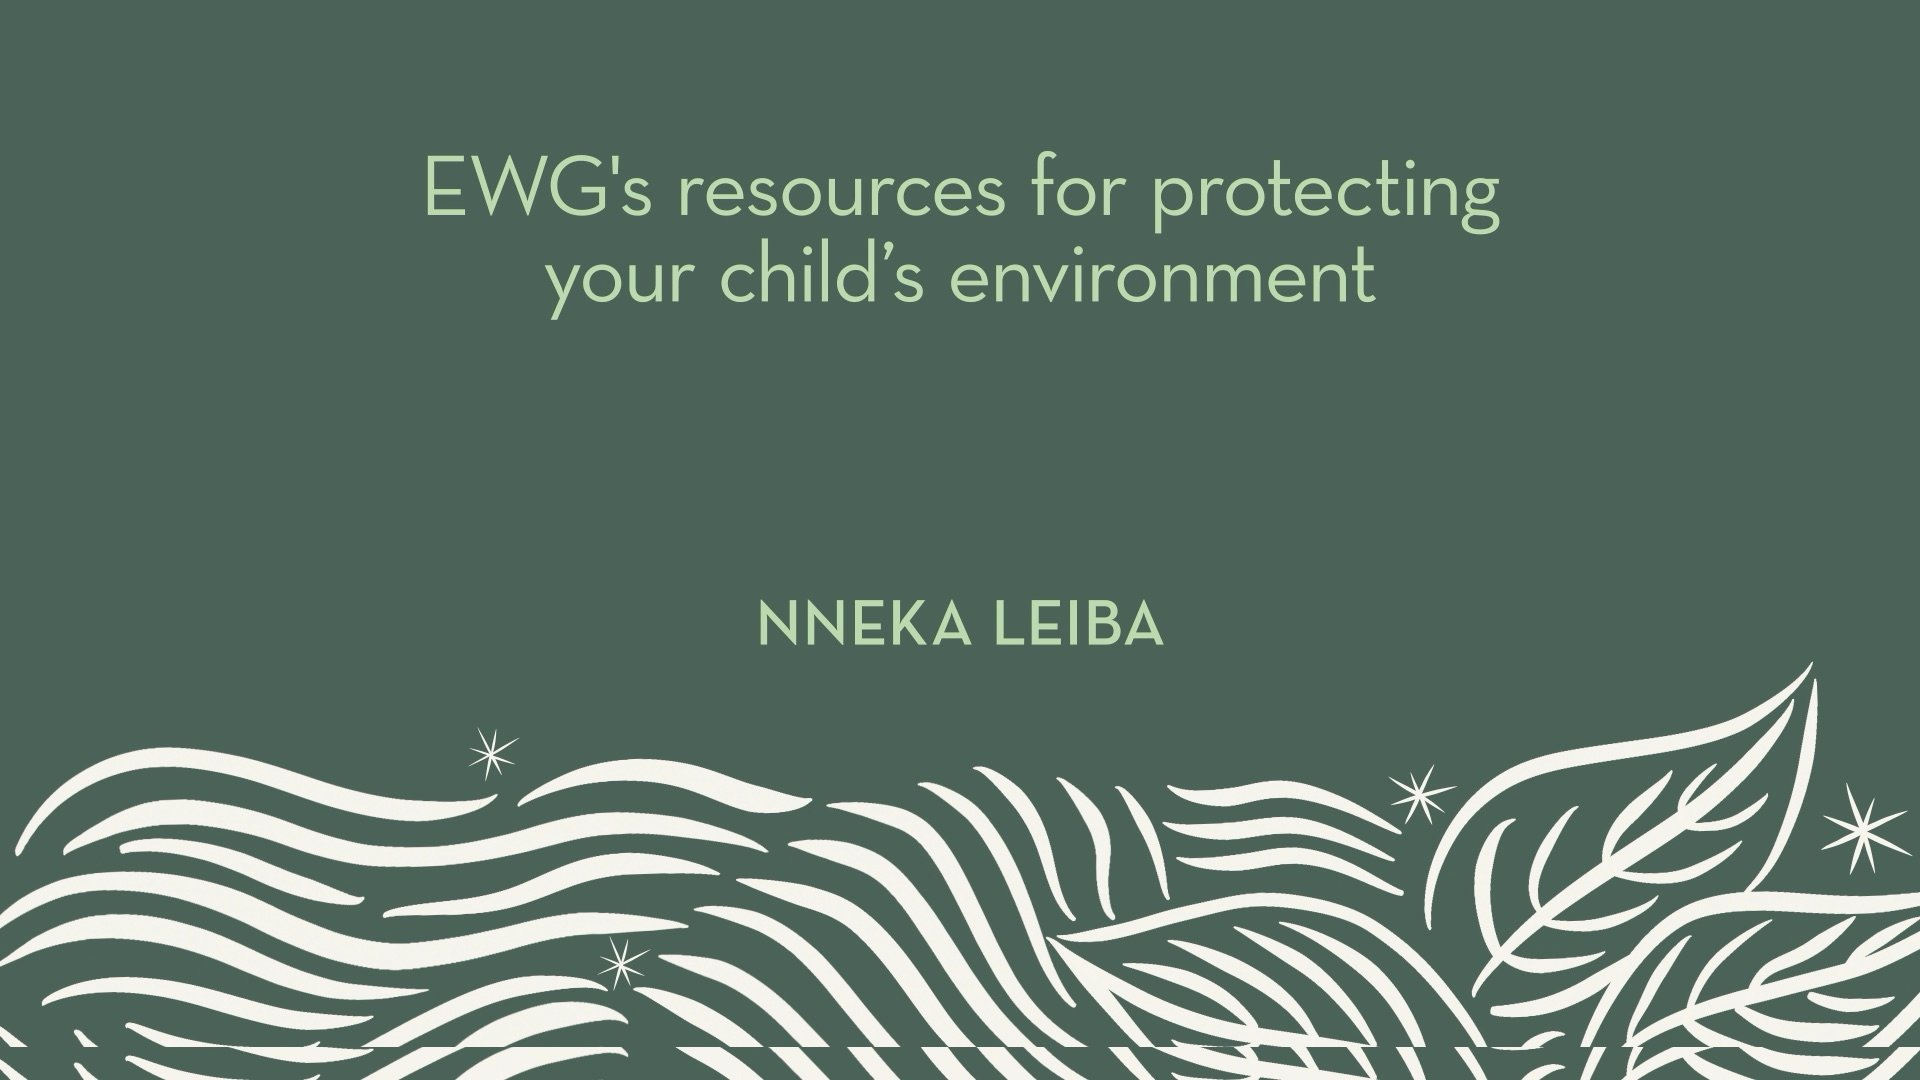 Nneka Leiba | EWG's resources for protecting your child's environment